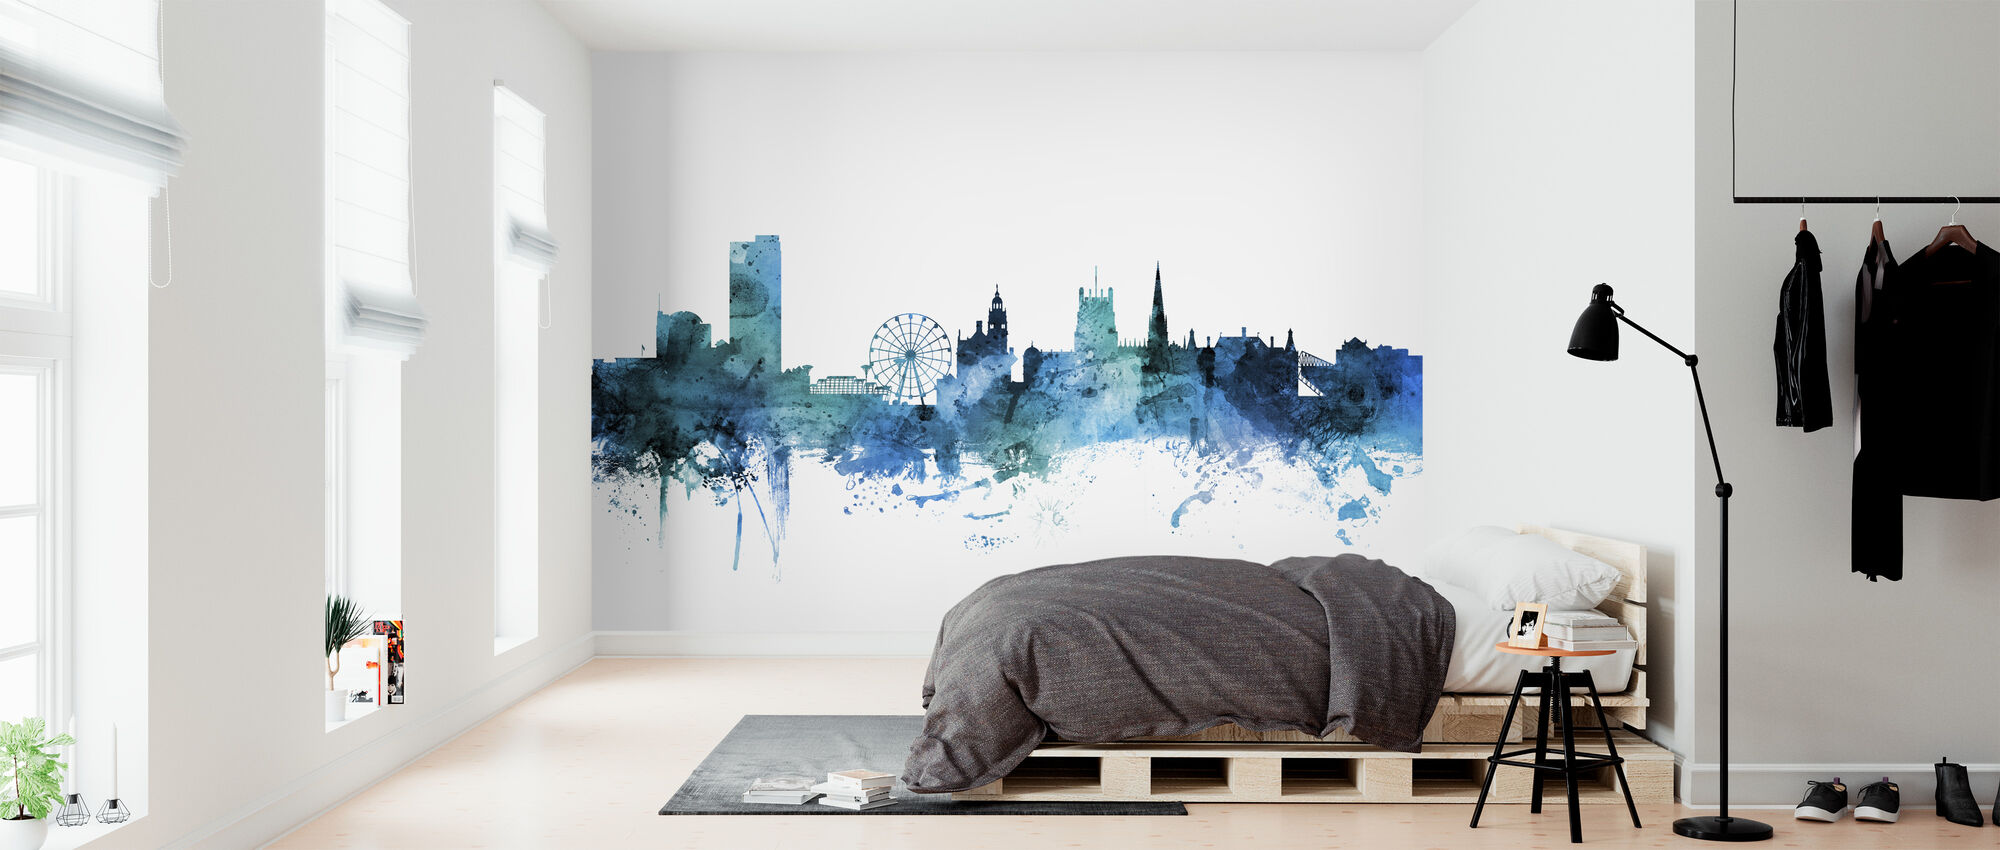 Sheffield England Skyline - Wallpaper - Bedroom